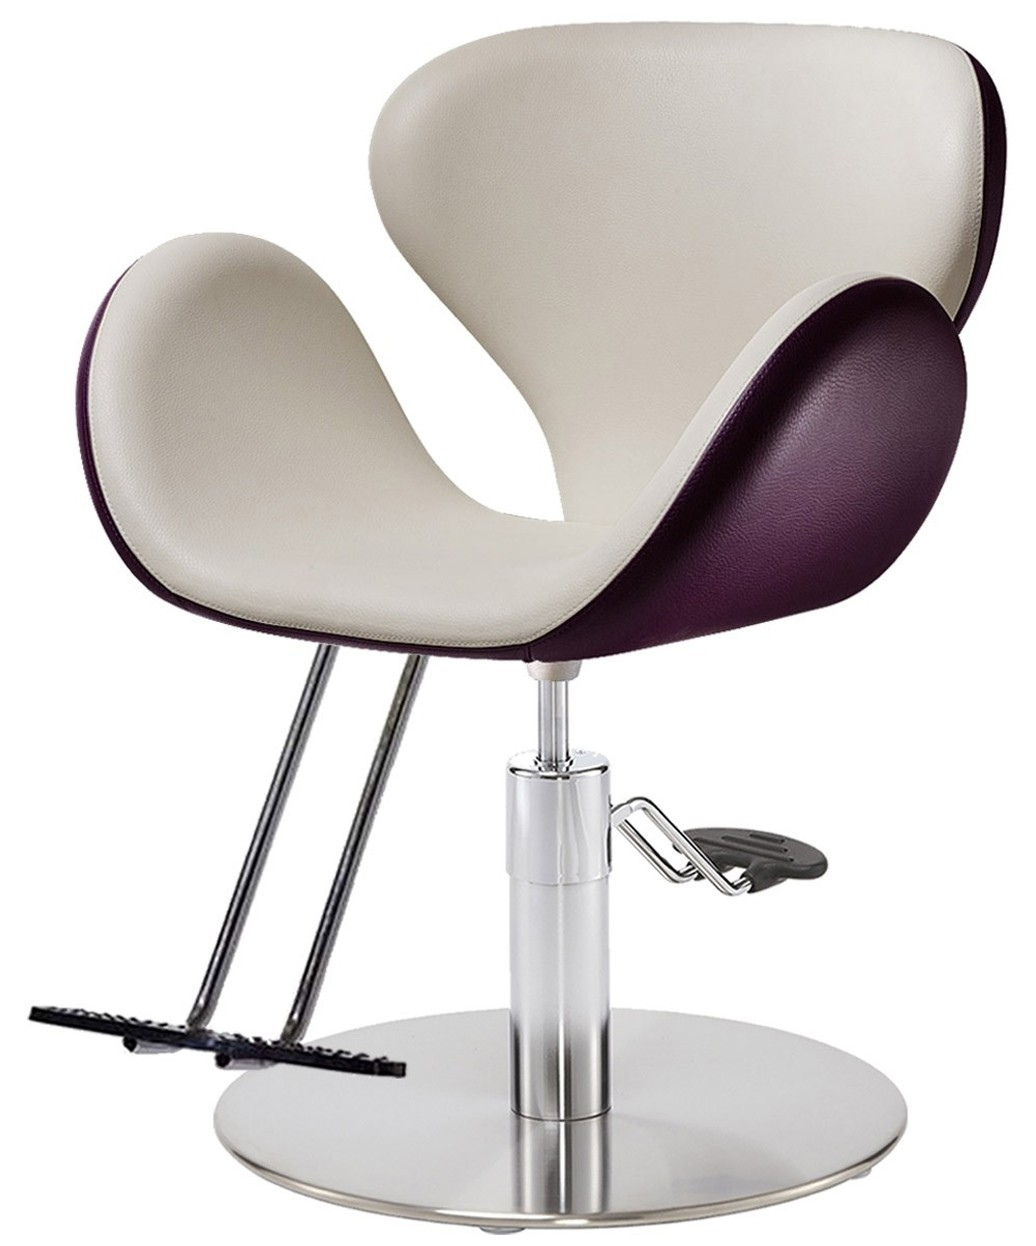 SH-300 Tulip Styling Chair